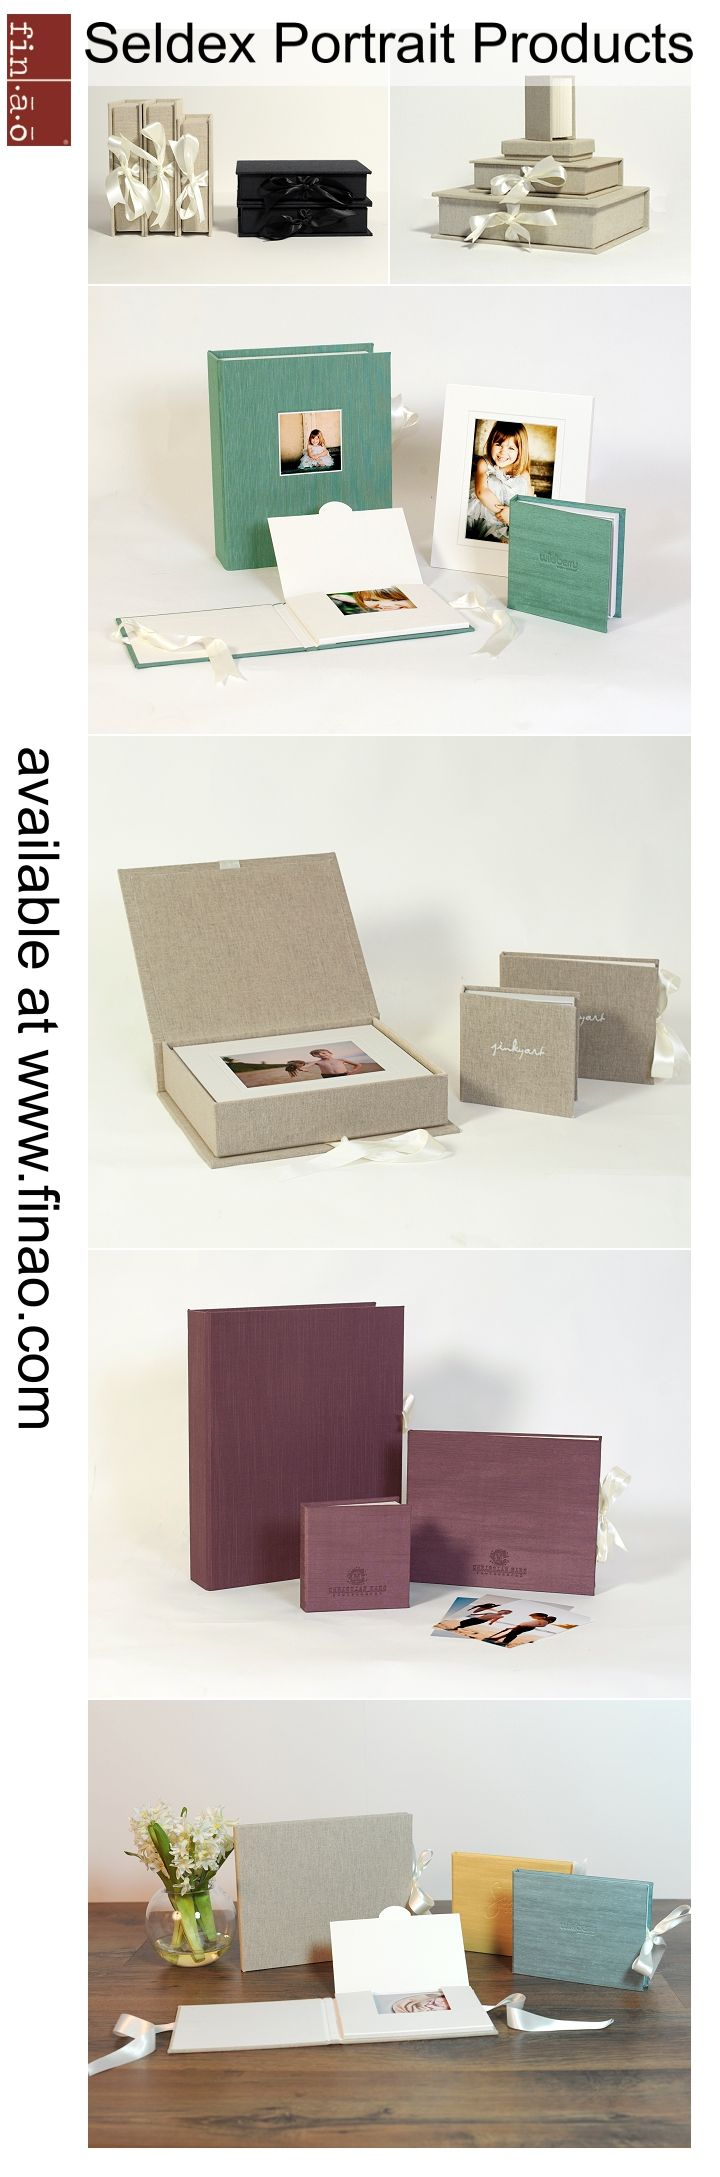 Great products for portrait photographers available at Finao Albums | Seldex Artistic Albums | www.finao.com